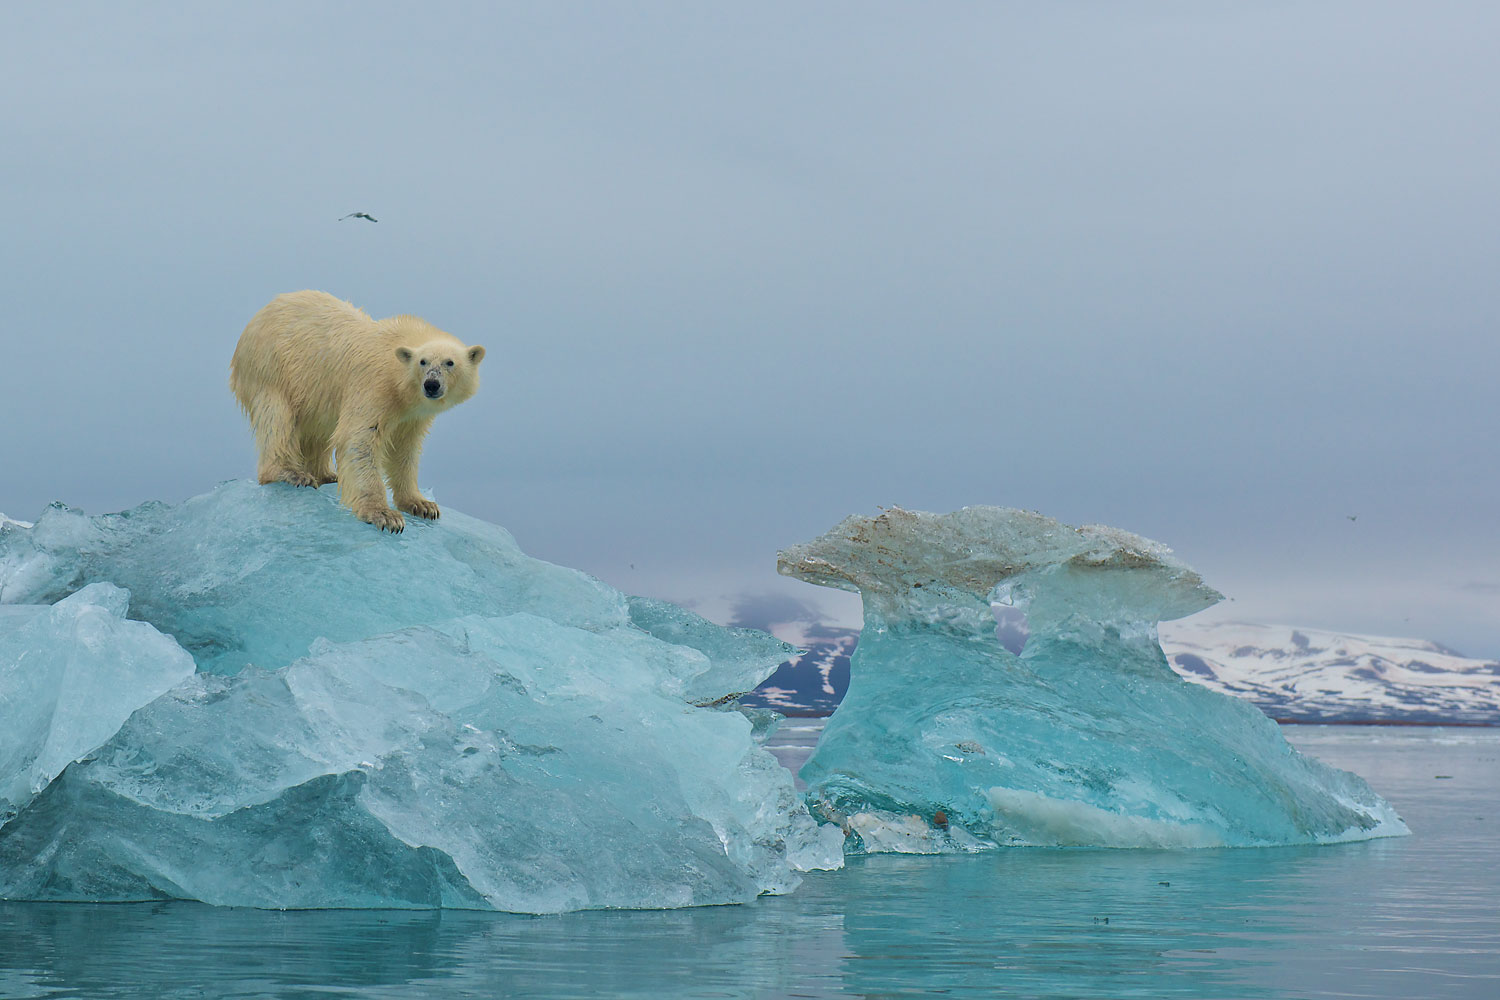 A polar bear scans the surrounding area for seals from the top of a large piece of glacial ice in Liefdefjorden, Svalbard in 2011.